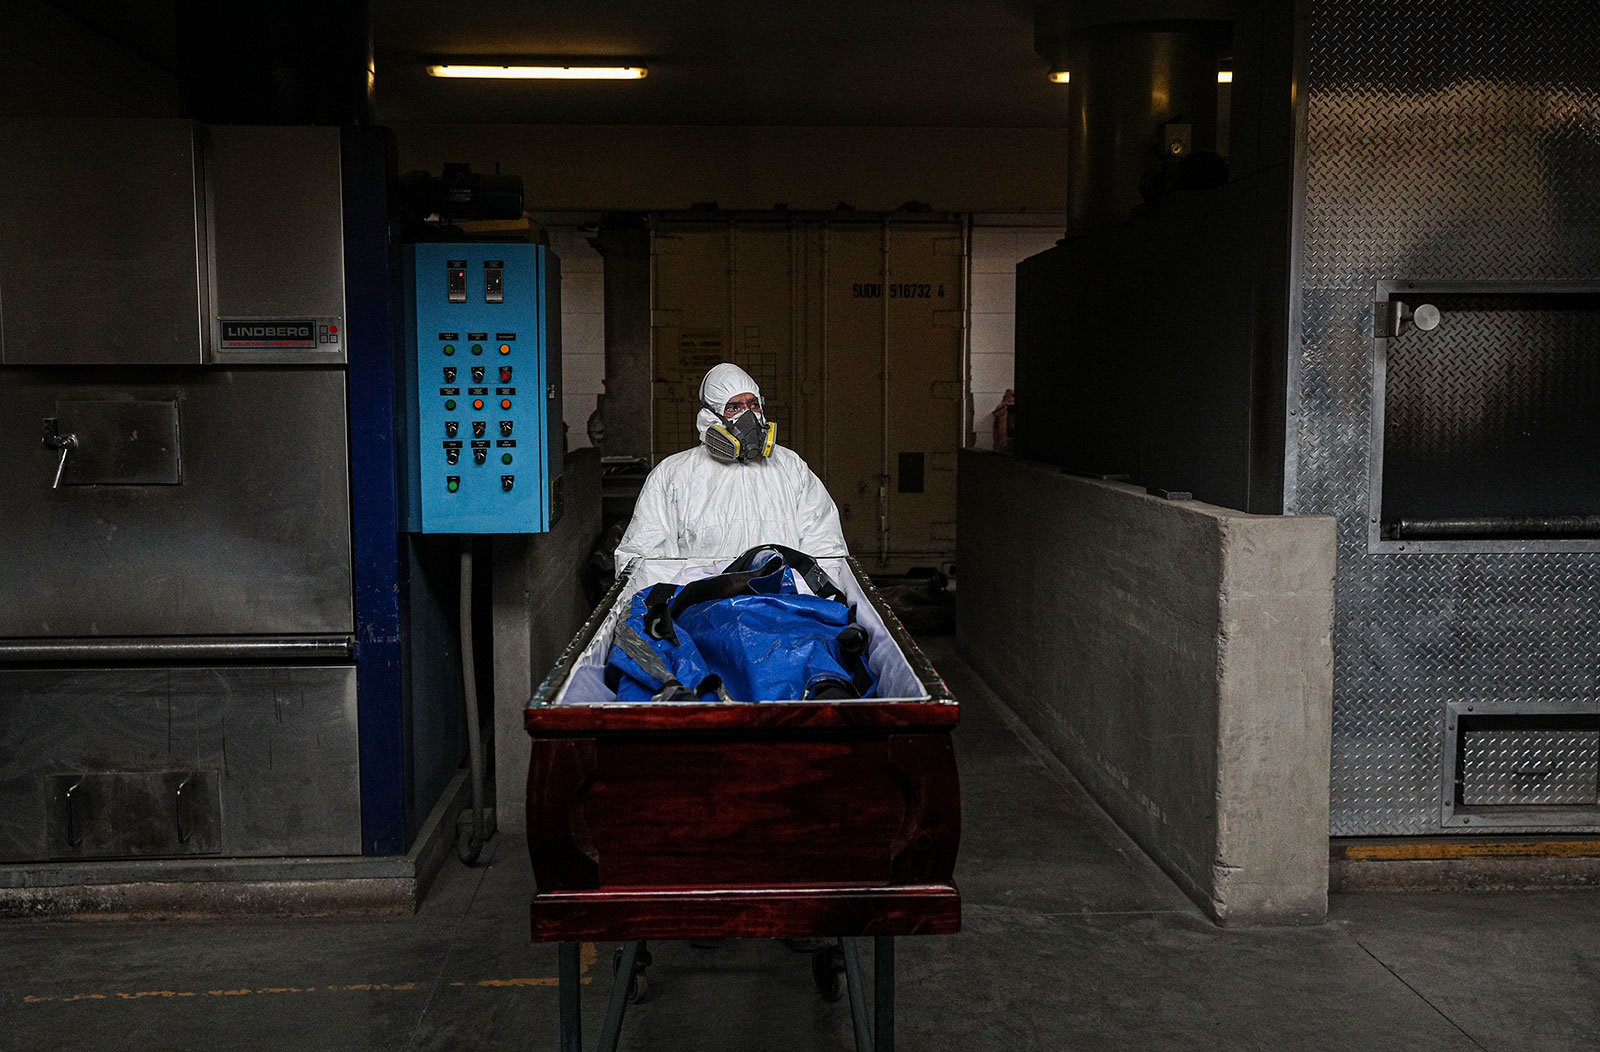 An employee at La Recoleta Crematorium in Santiago, Chile, prepares to cremate the body of a coronavirus victim on Friday, June 26. More than 500,000 people worldwide have died from the novel coronavirus, according to Johns Hopkins University's tally.